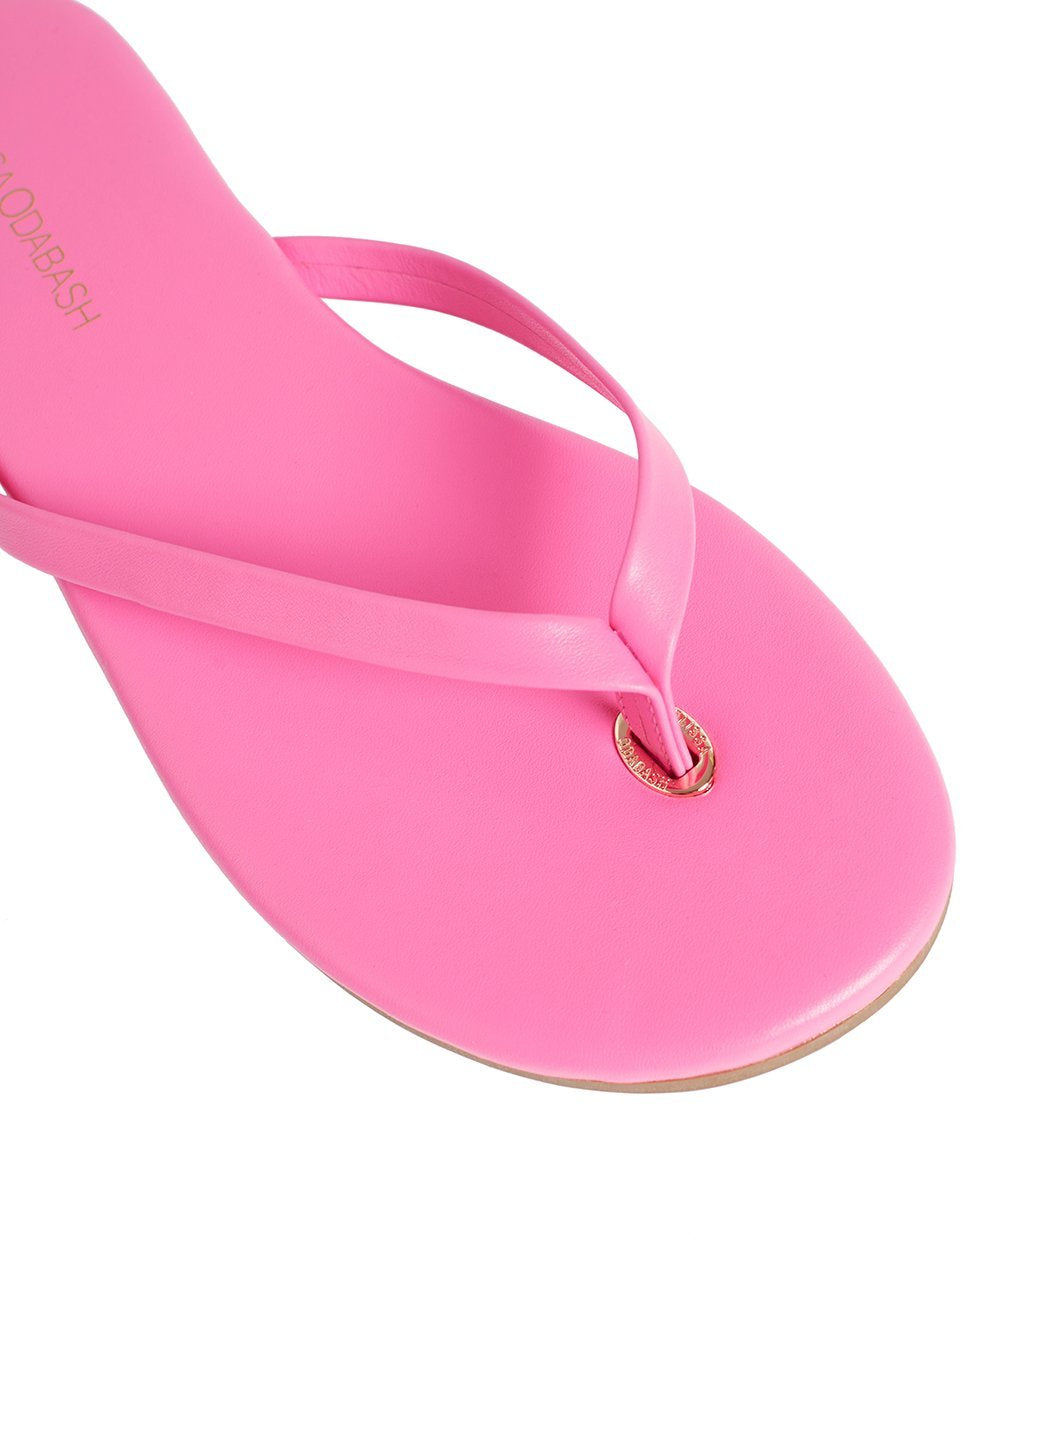 Sandals Flamingo